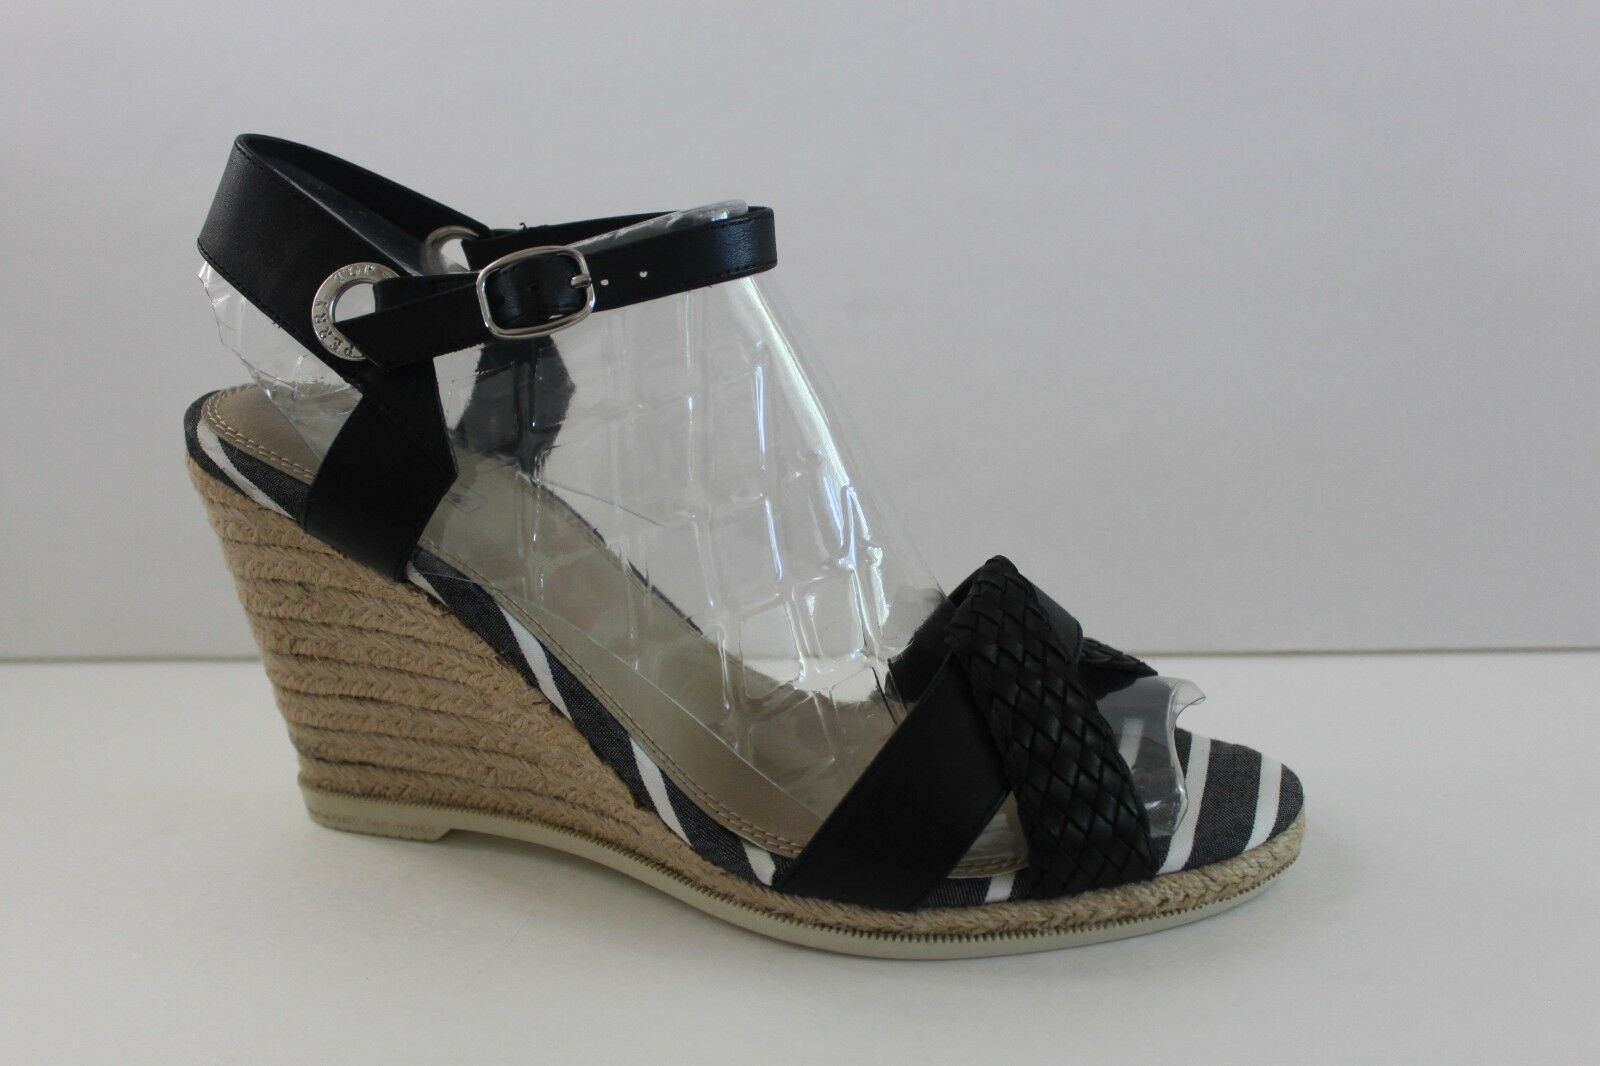 Sperry Top Sider Women's shoes Size 9.5 M Wedge Sandals Black Leather High Heels